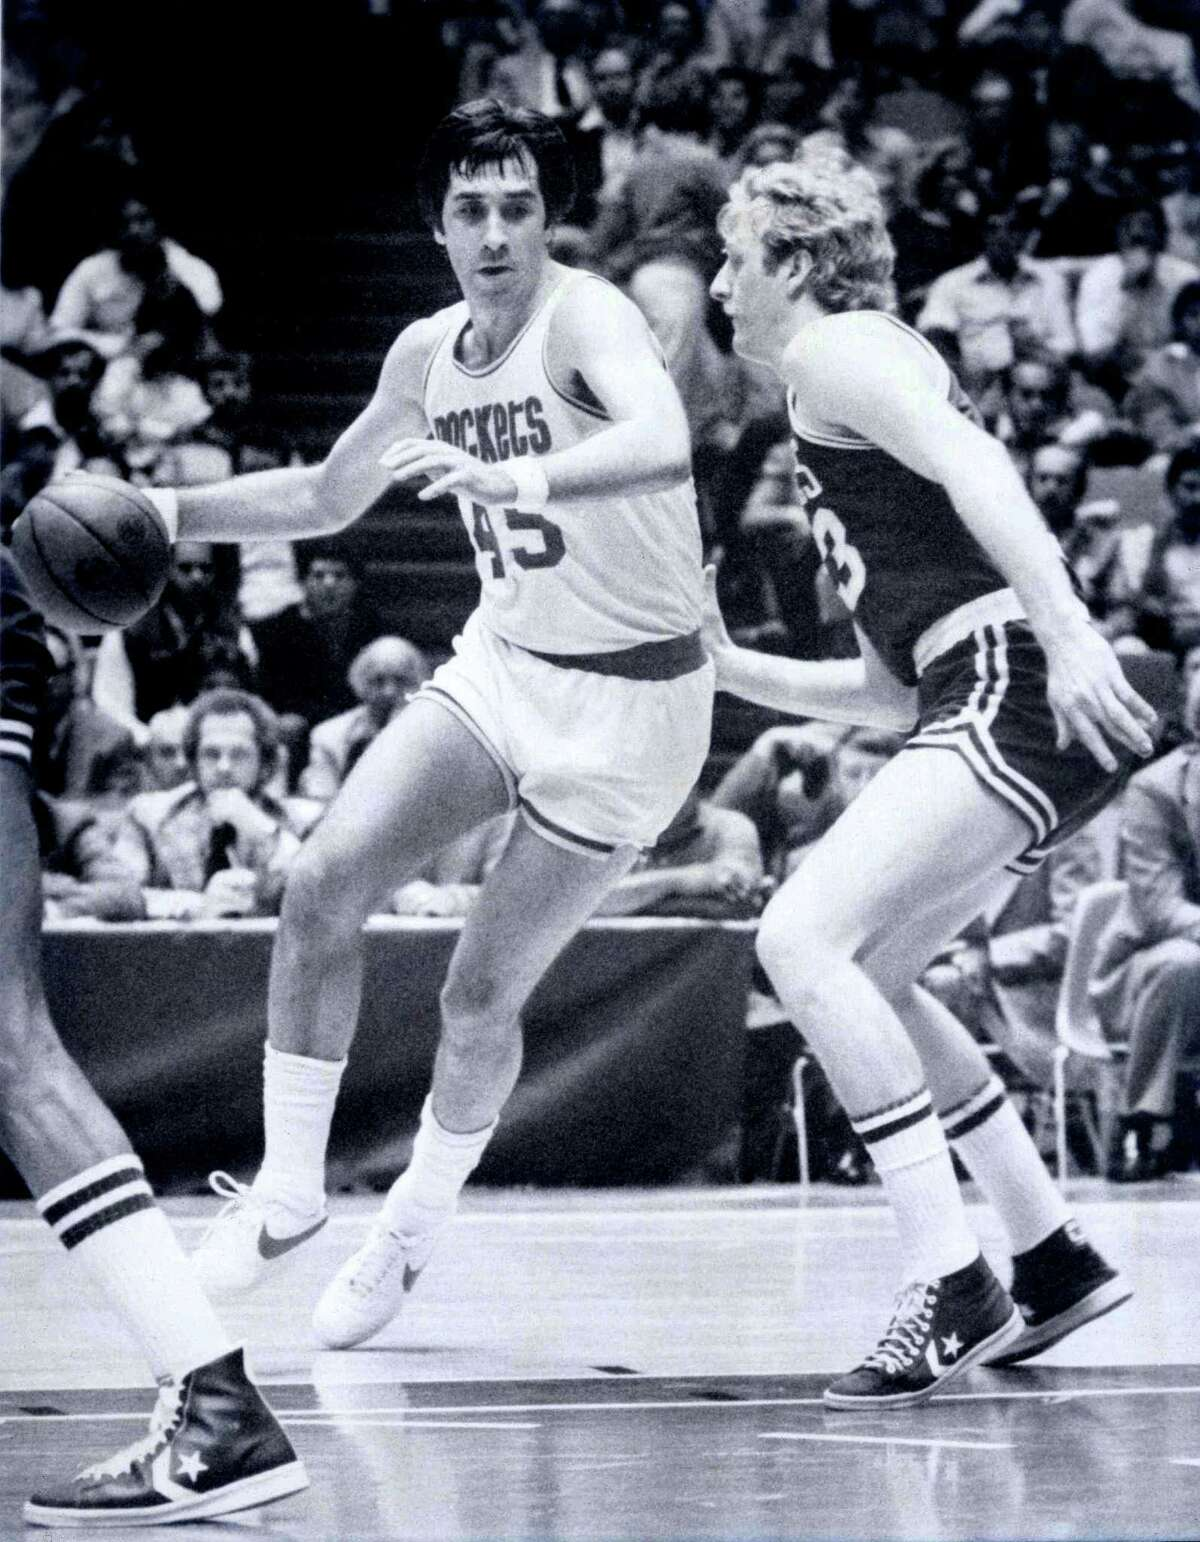 45 - Rudy Tomjanovich Rudy T is, fittingly, the only player ever to wear No. 45. It was retired. He was a five-time All-Star and is third in points scored in franchise history. He later led Houston to its two NBA titles as coach and is regarded as one of the most beloved Rockets ever.